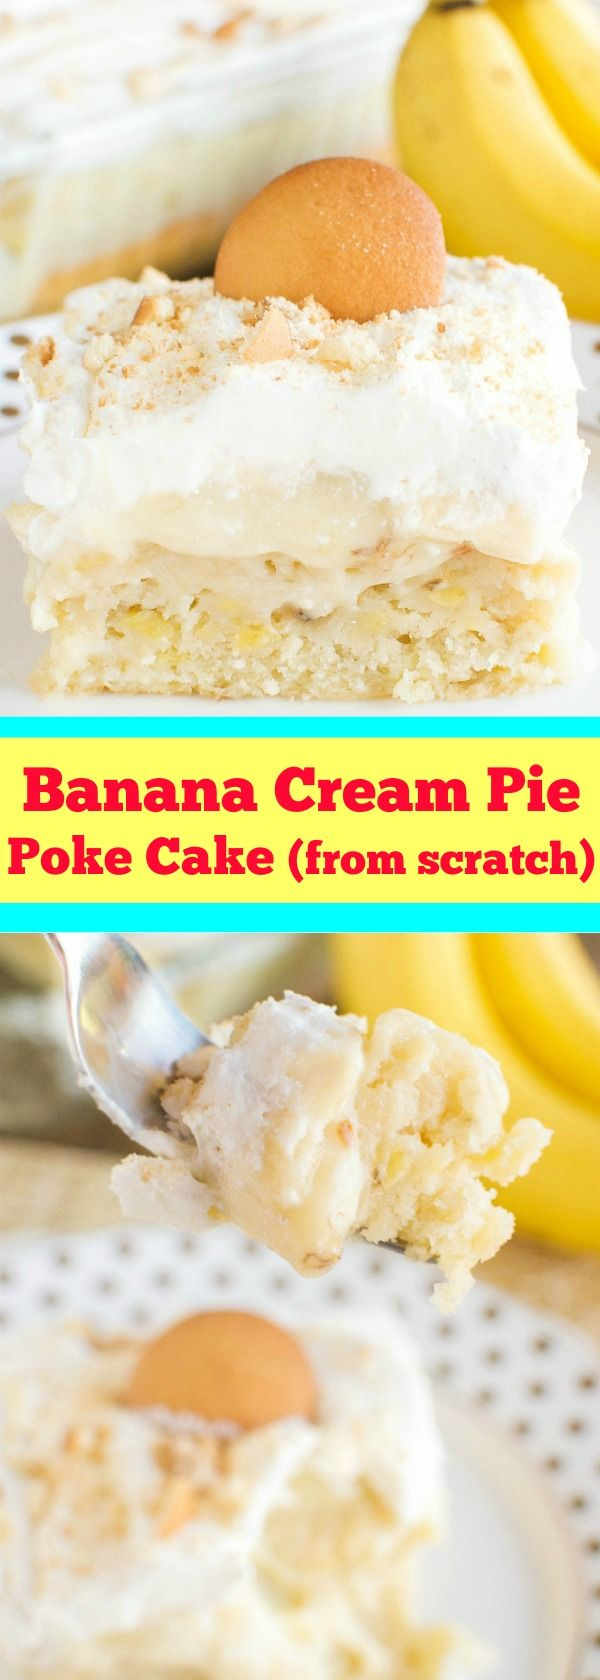 Homemade Banana Cream Pie Poke Cake - Holy Moly, you HAVE to make this!!!